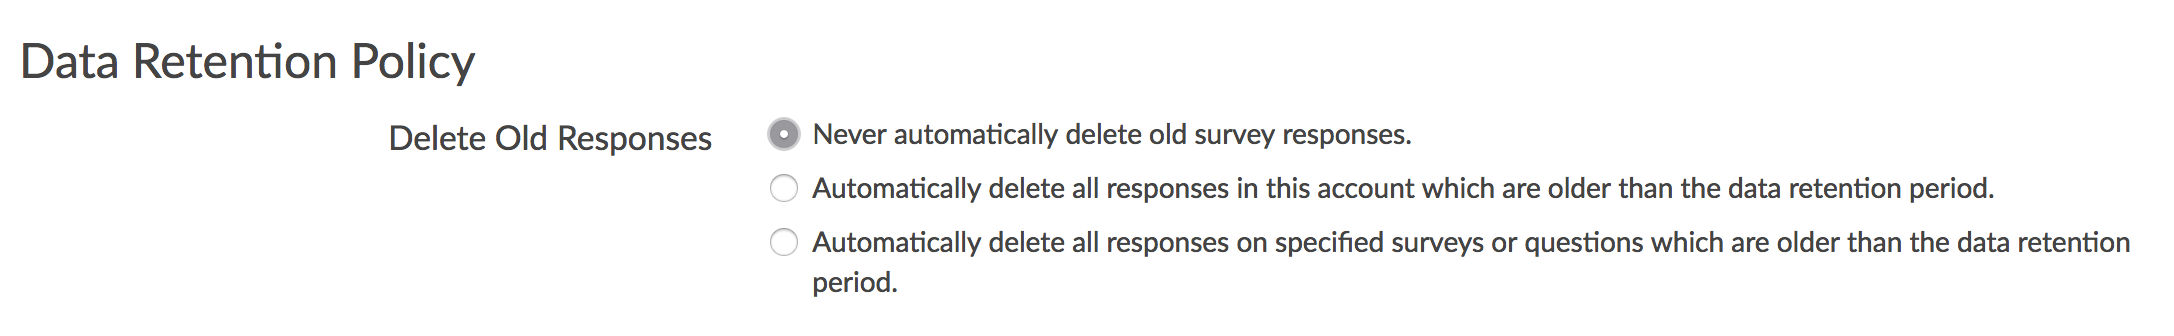 DRP Default: Never automatically delete old survey responses